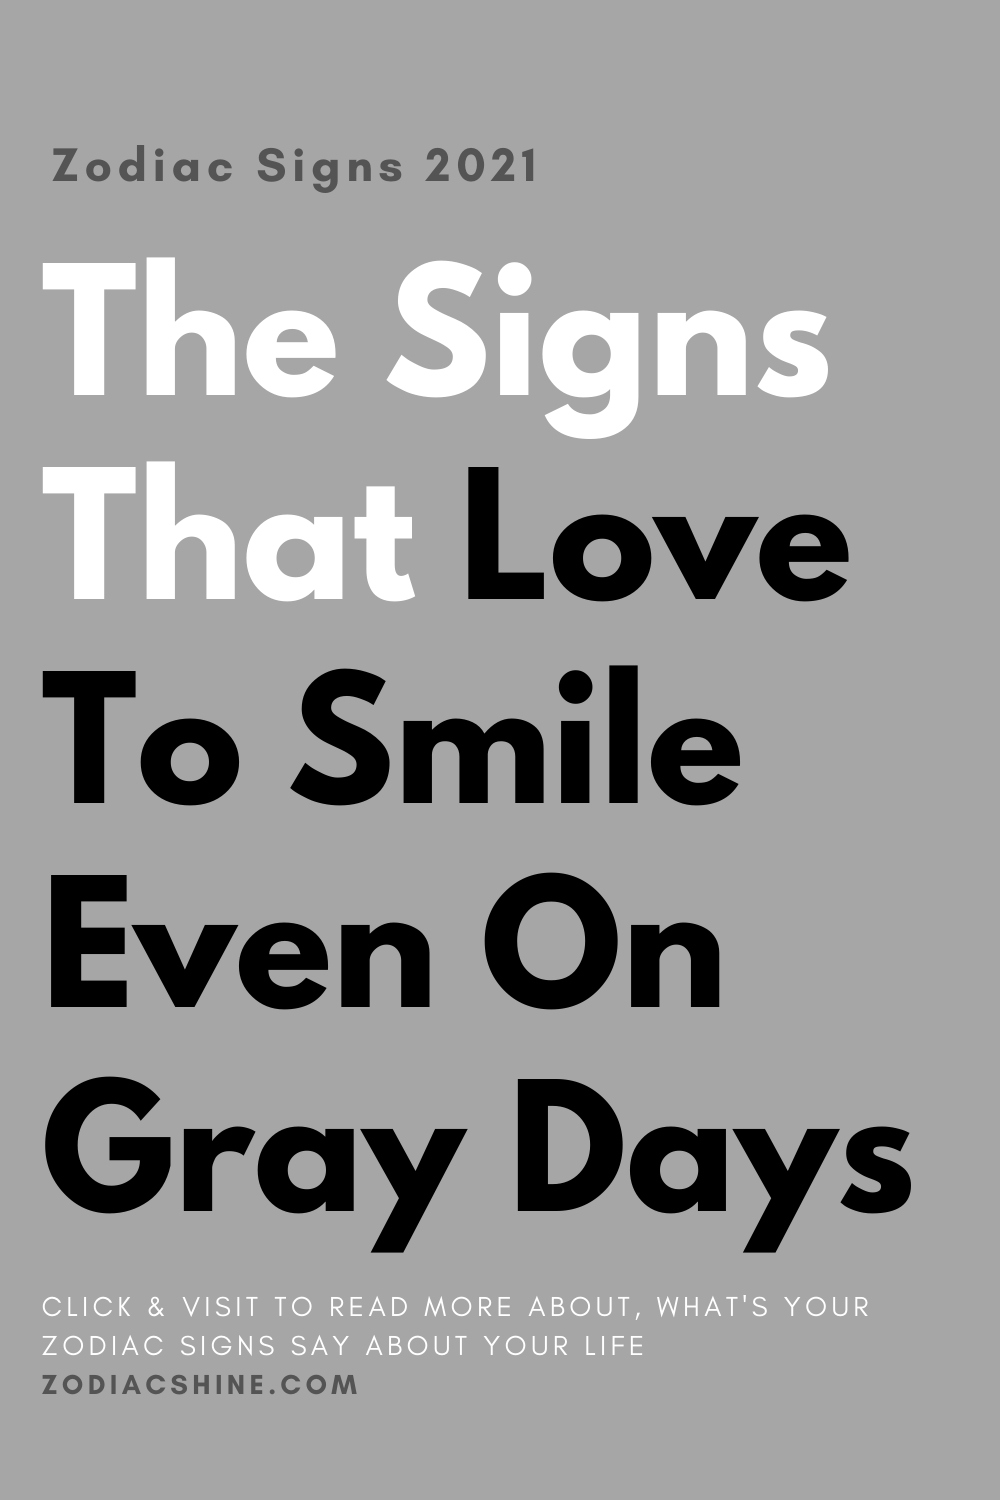 The Signs That Love To Smile Even On Gray Days